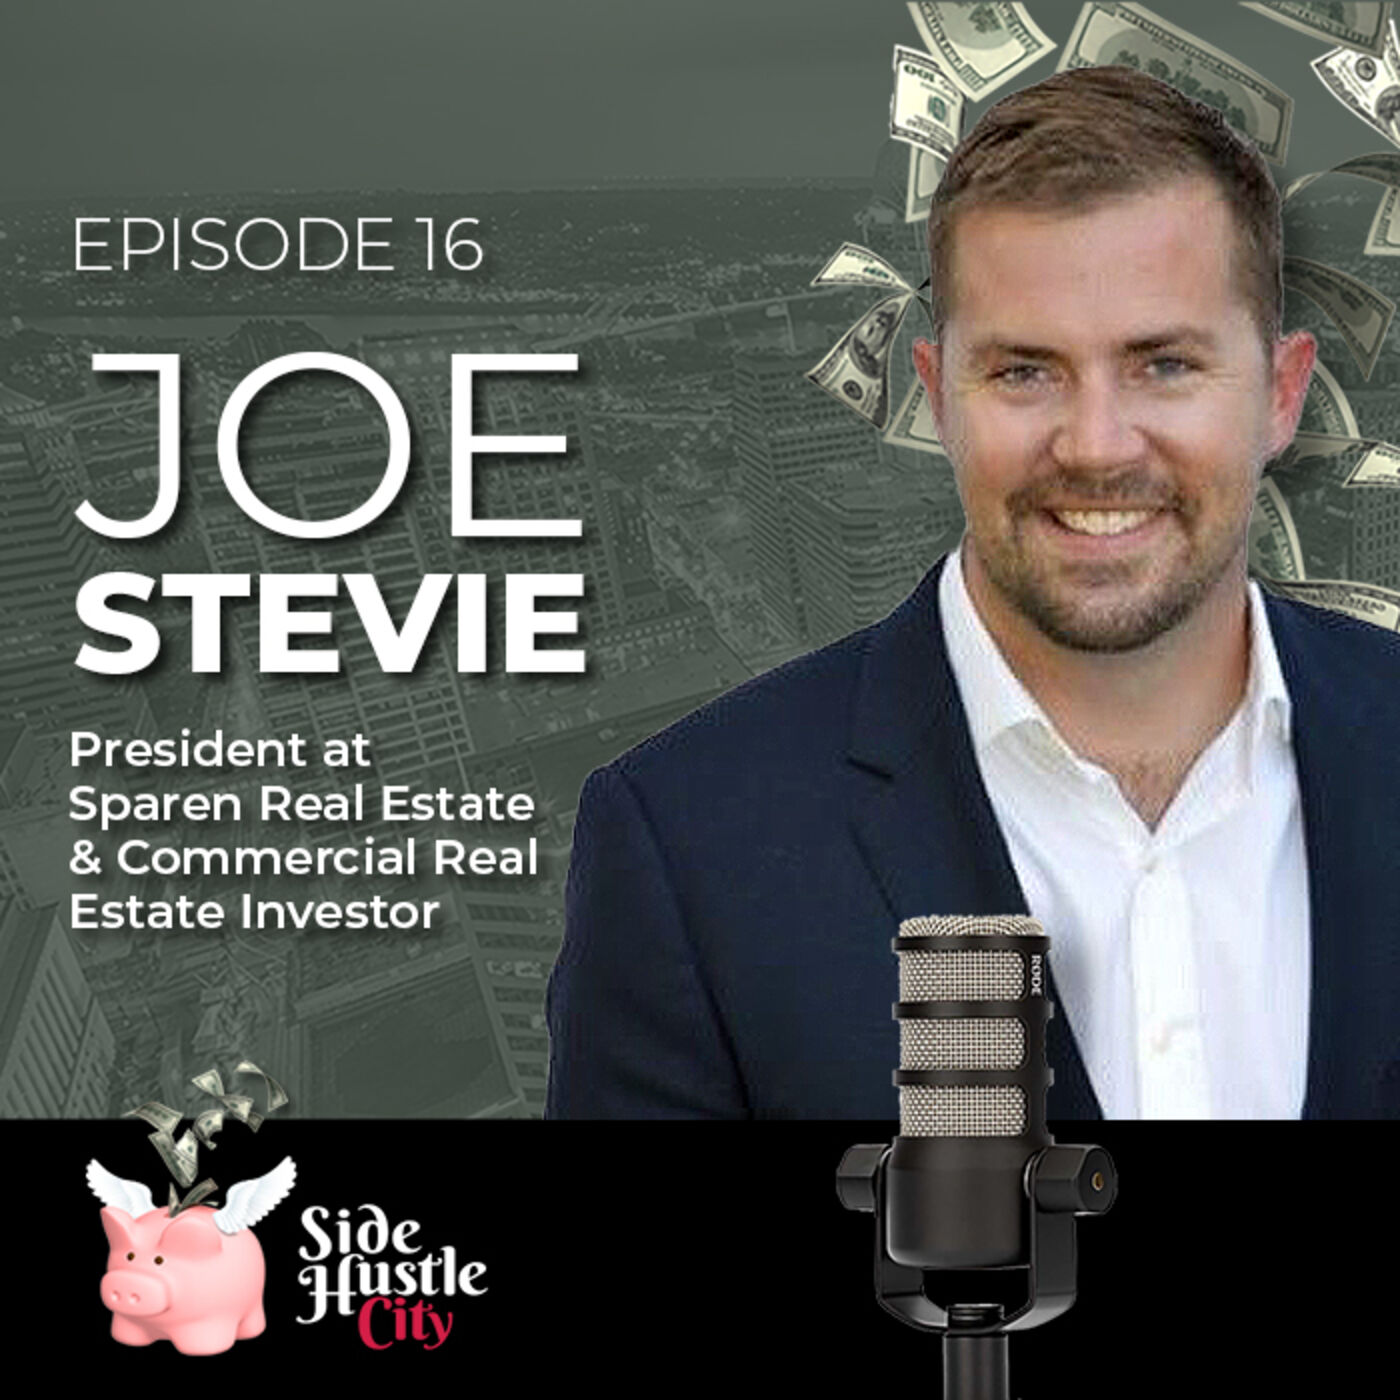 Episode 16 - Joe Stevie, President at Sparen Real Estate talks about how he started his real estate career in flips, single-family rental and eventually multi-million dollar commercial real estate deals